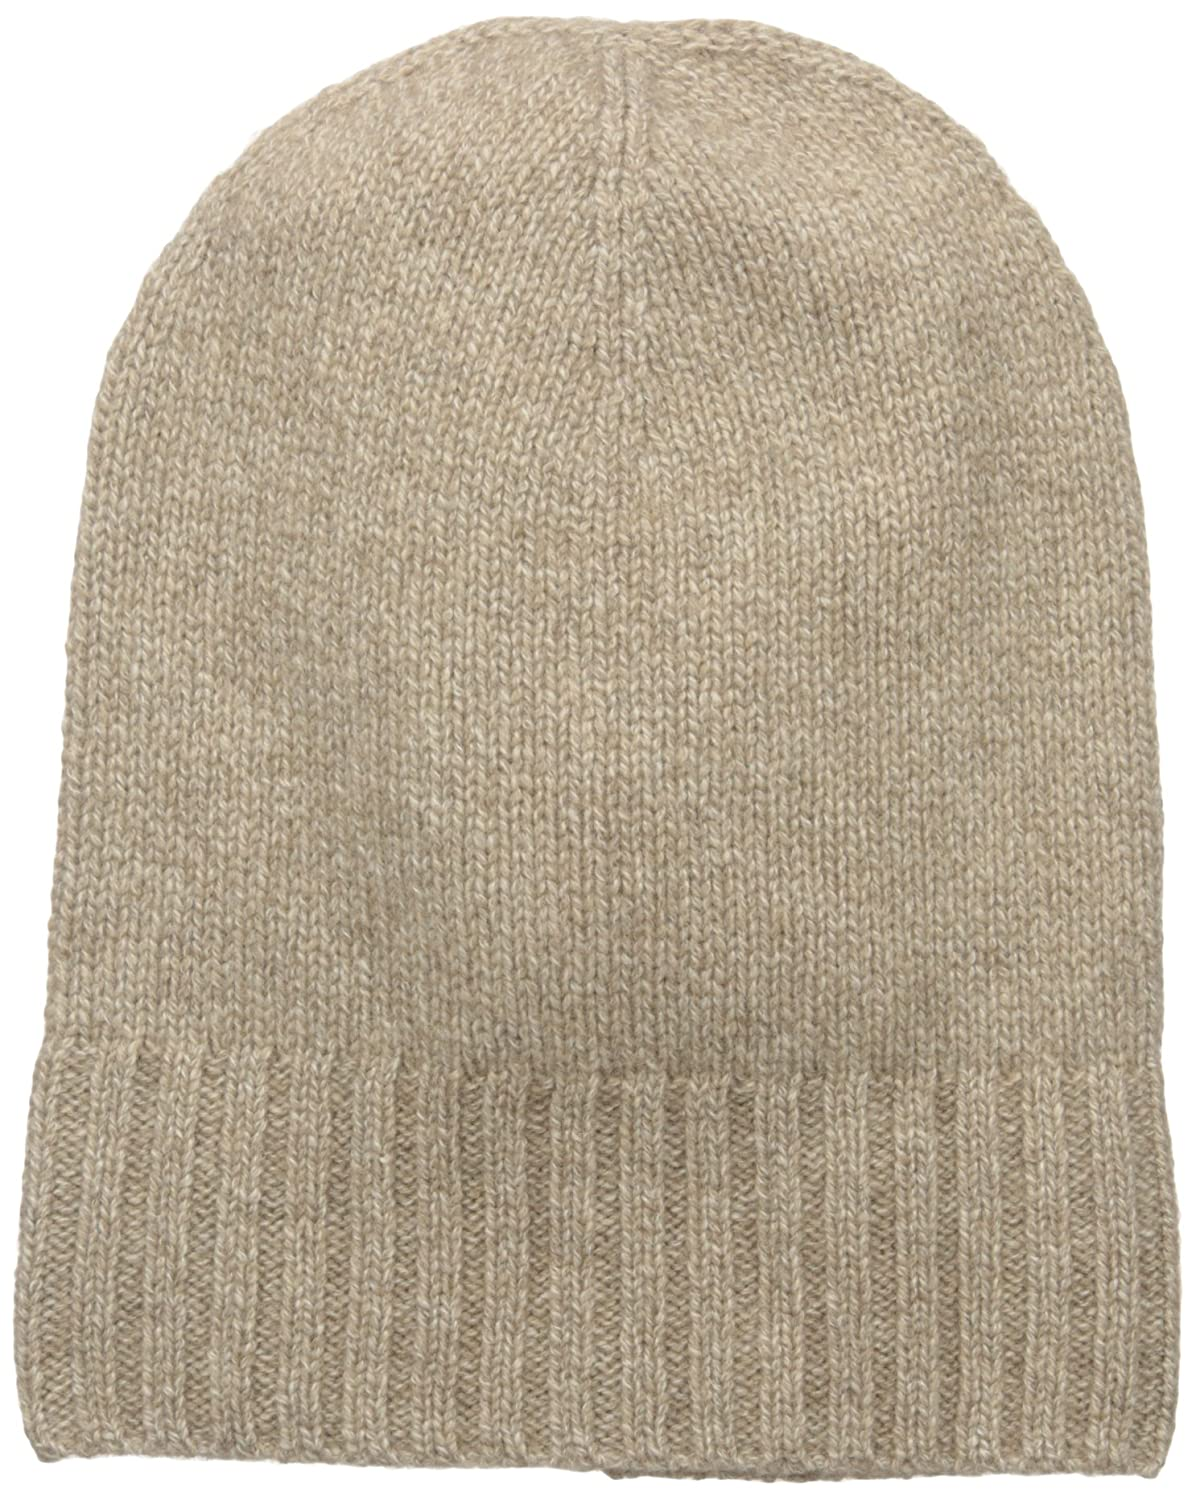 Hat Attack Women's Cashmere Slouchy, Taupe, One Size Hat Attack womens accessories GFM113